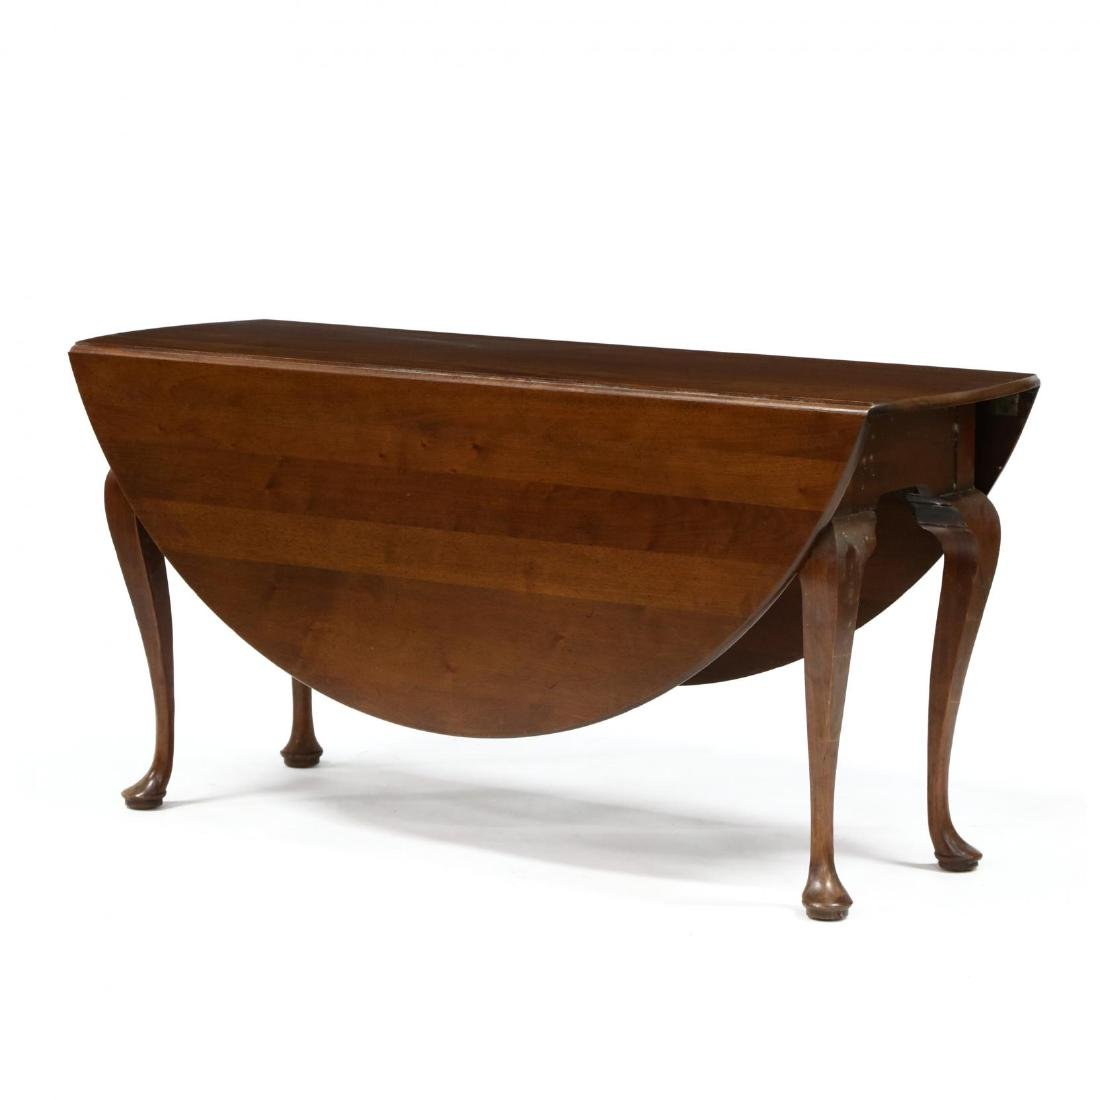 Century Furniture Co., Queen Anne Style Drop Leaf